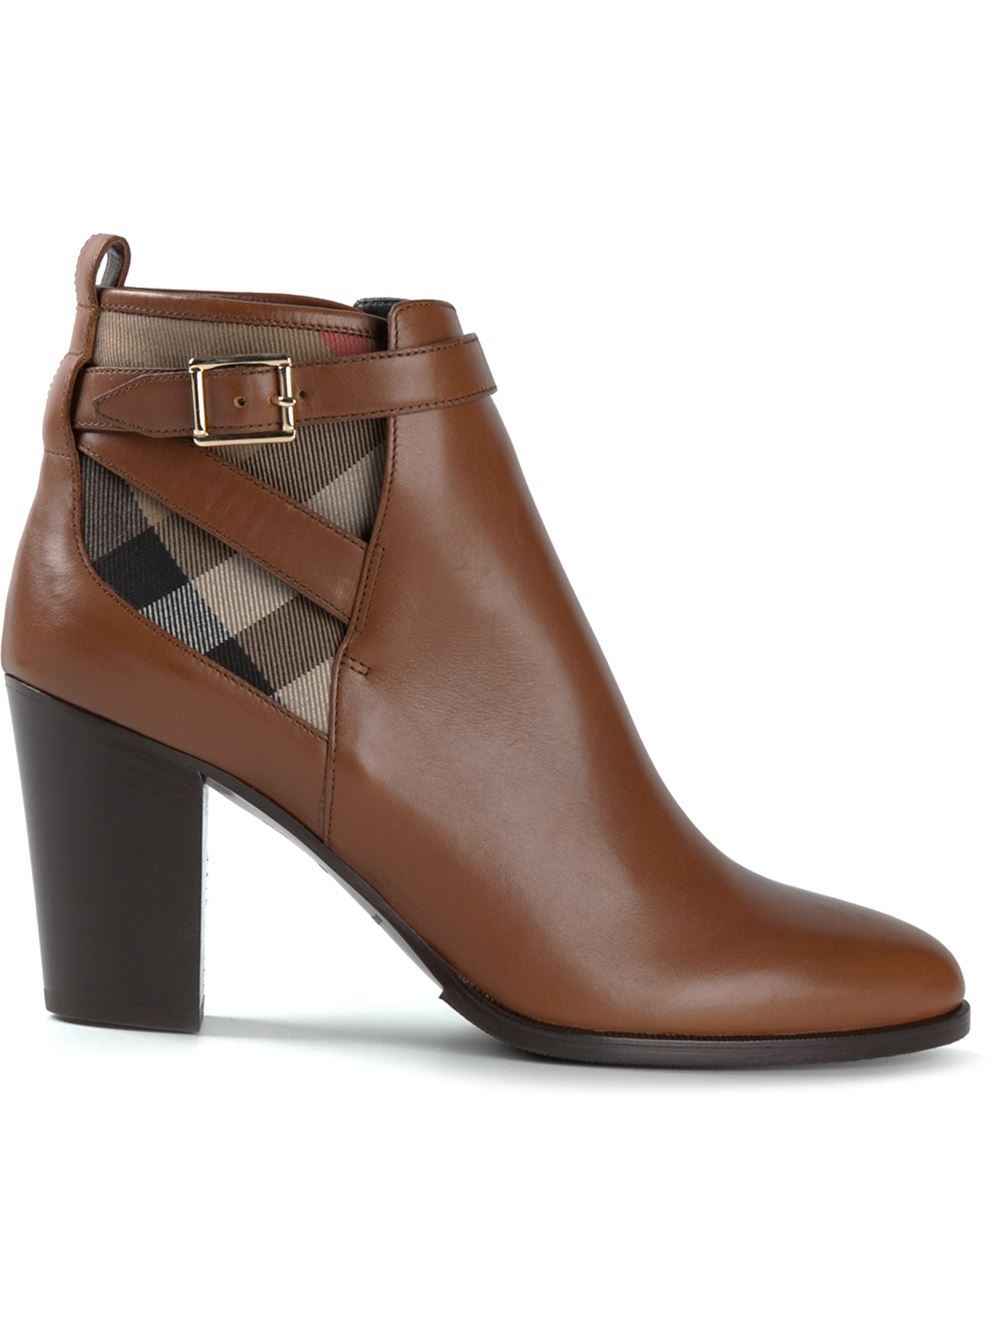 House Check ankle boots - Brown Burberry dCgxuWP